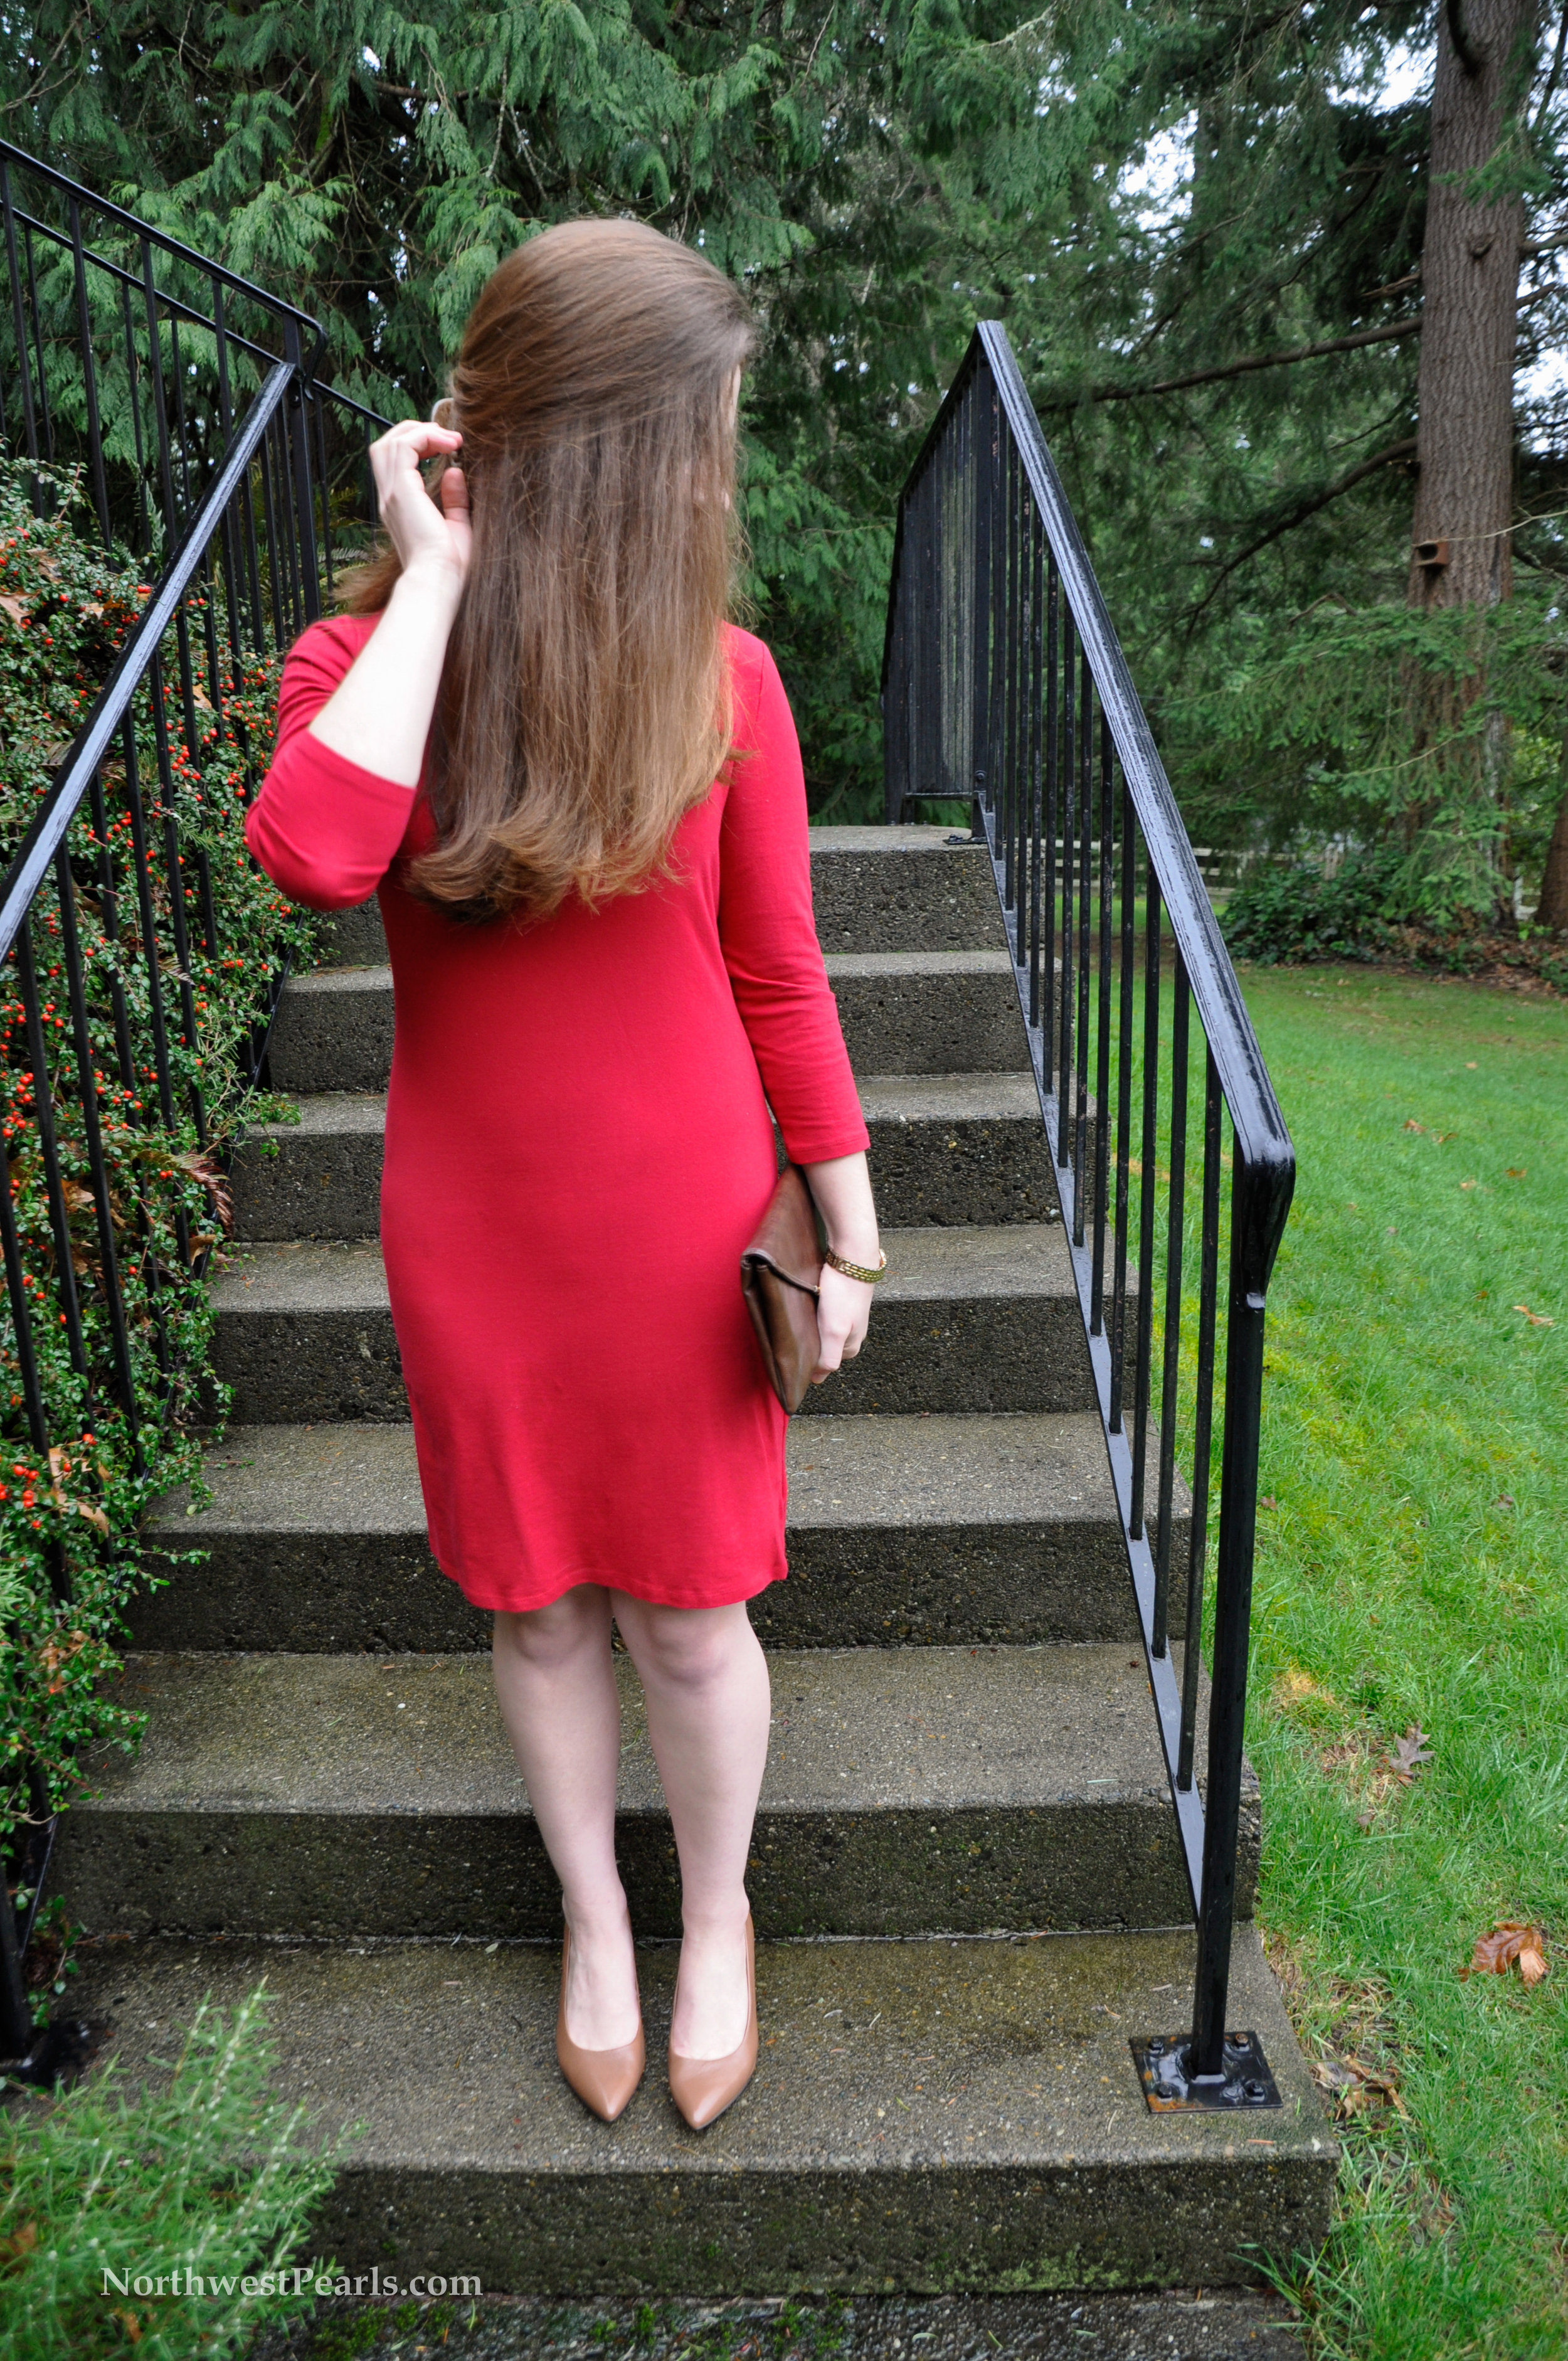 Northwest Pearls: Valentine's Day OOTD